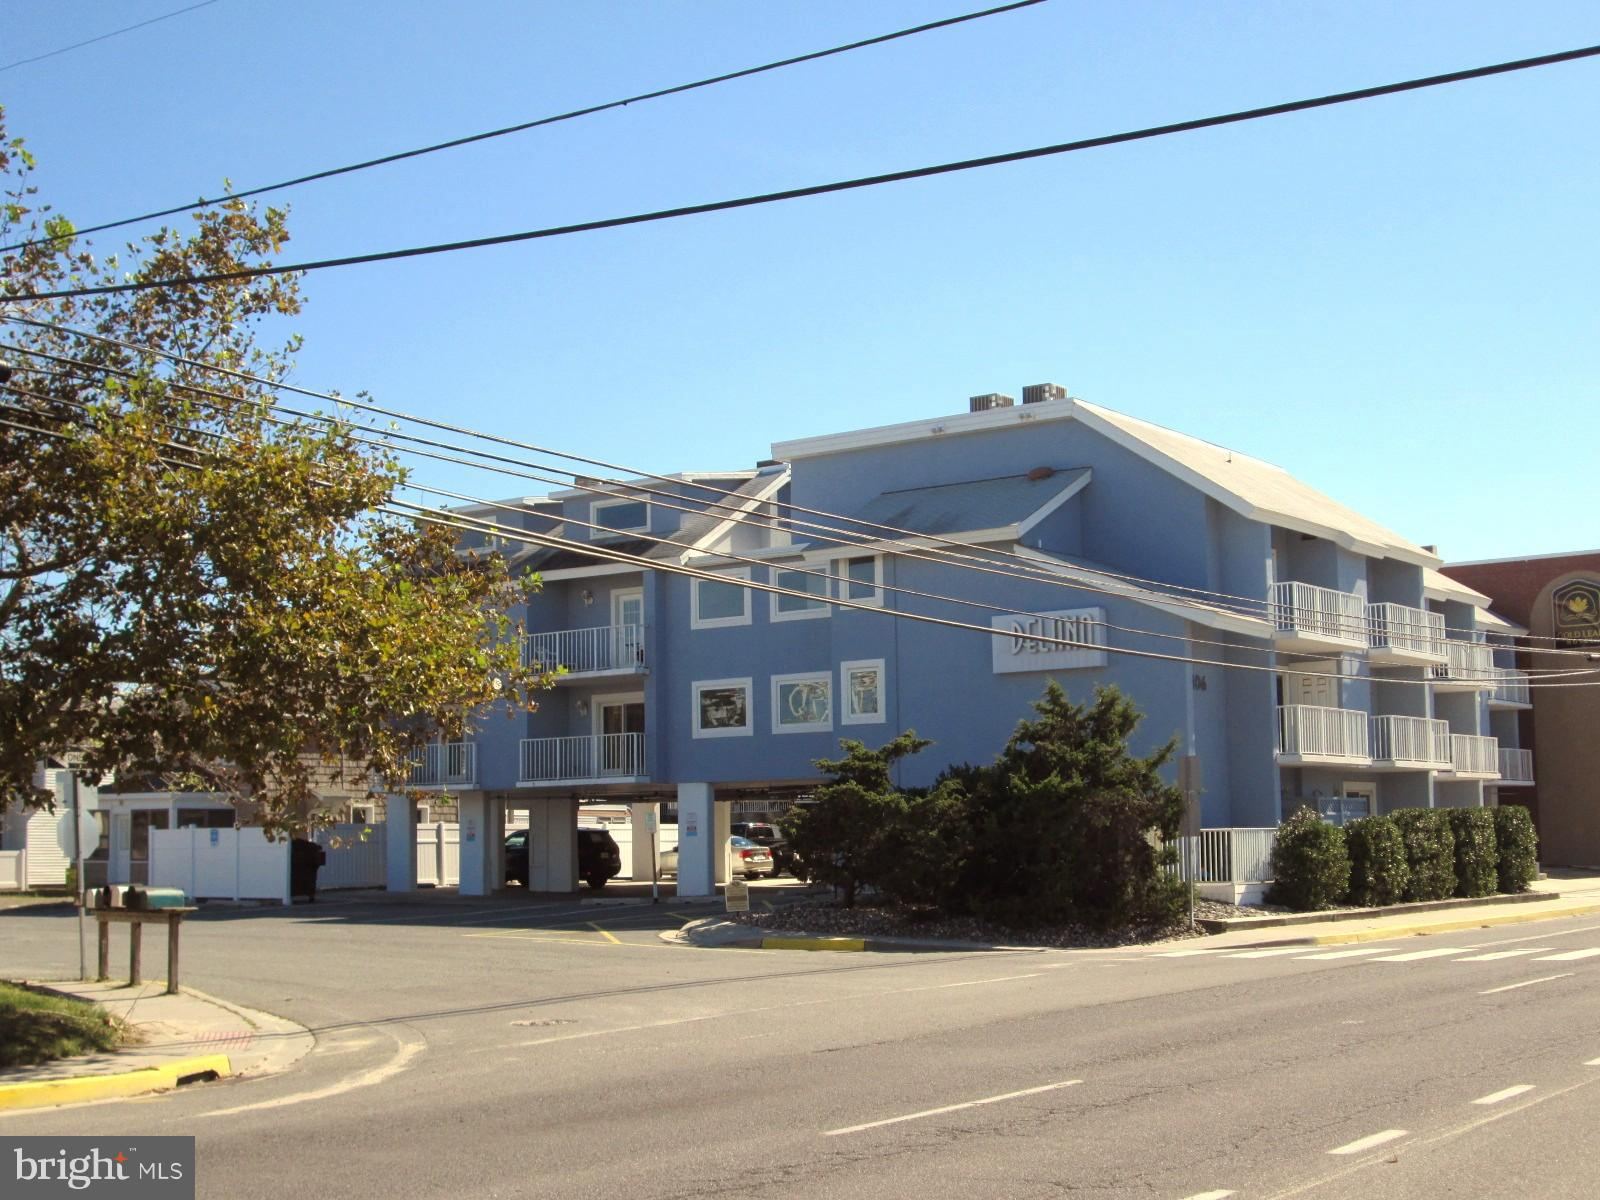 1 bdrm + loft  (2nd bdrm) l + 2 full baths located in the ocean block on the Rodney  St. side of the